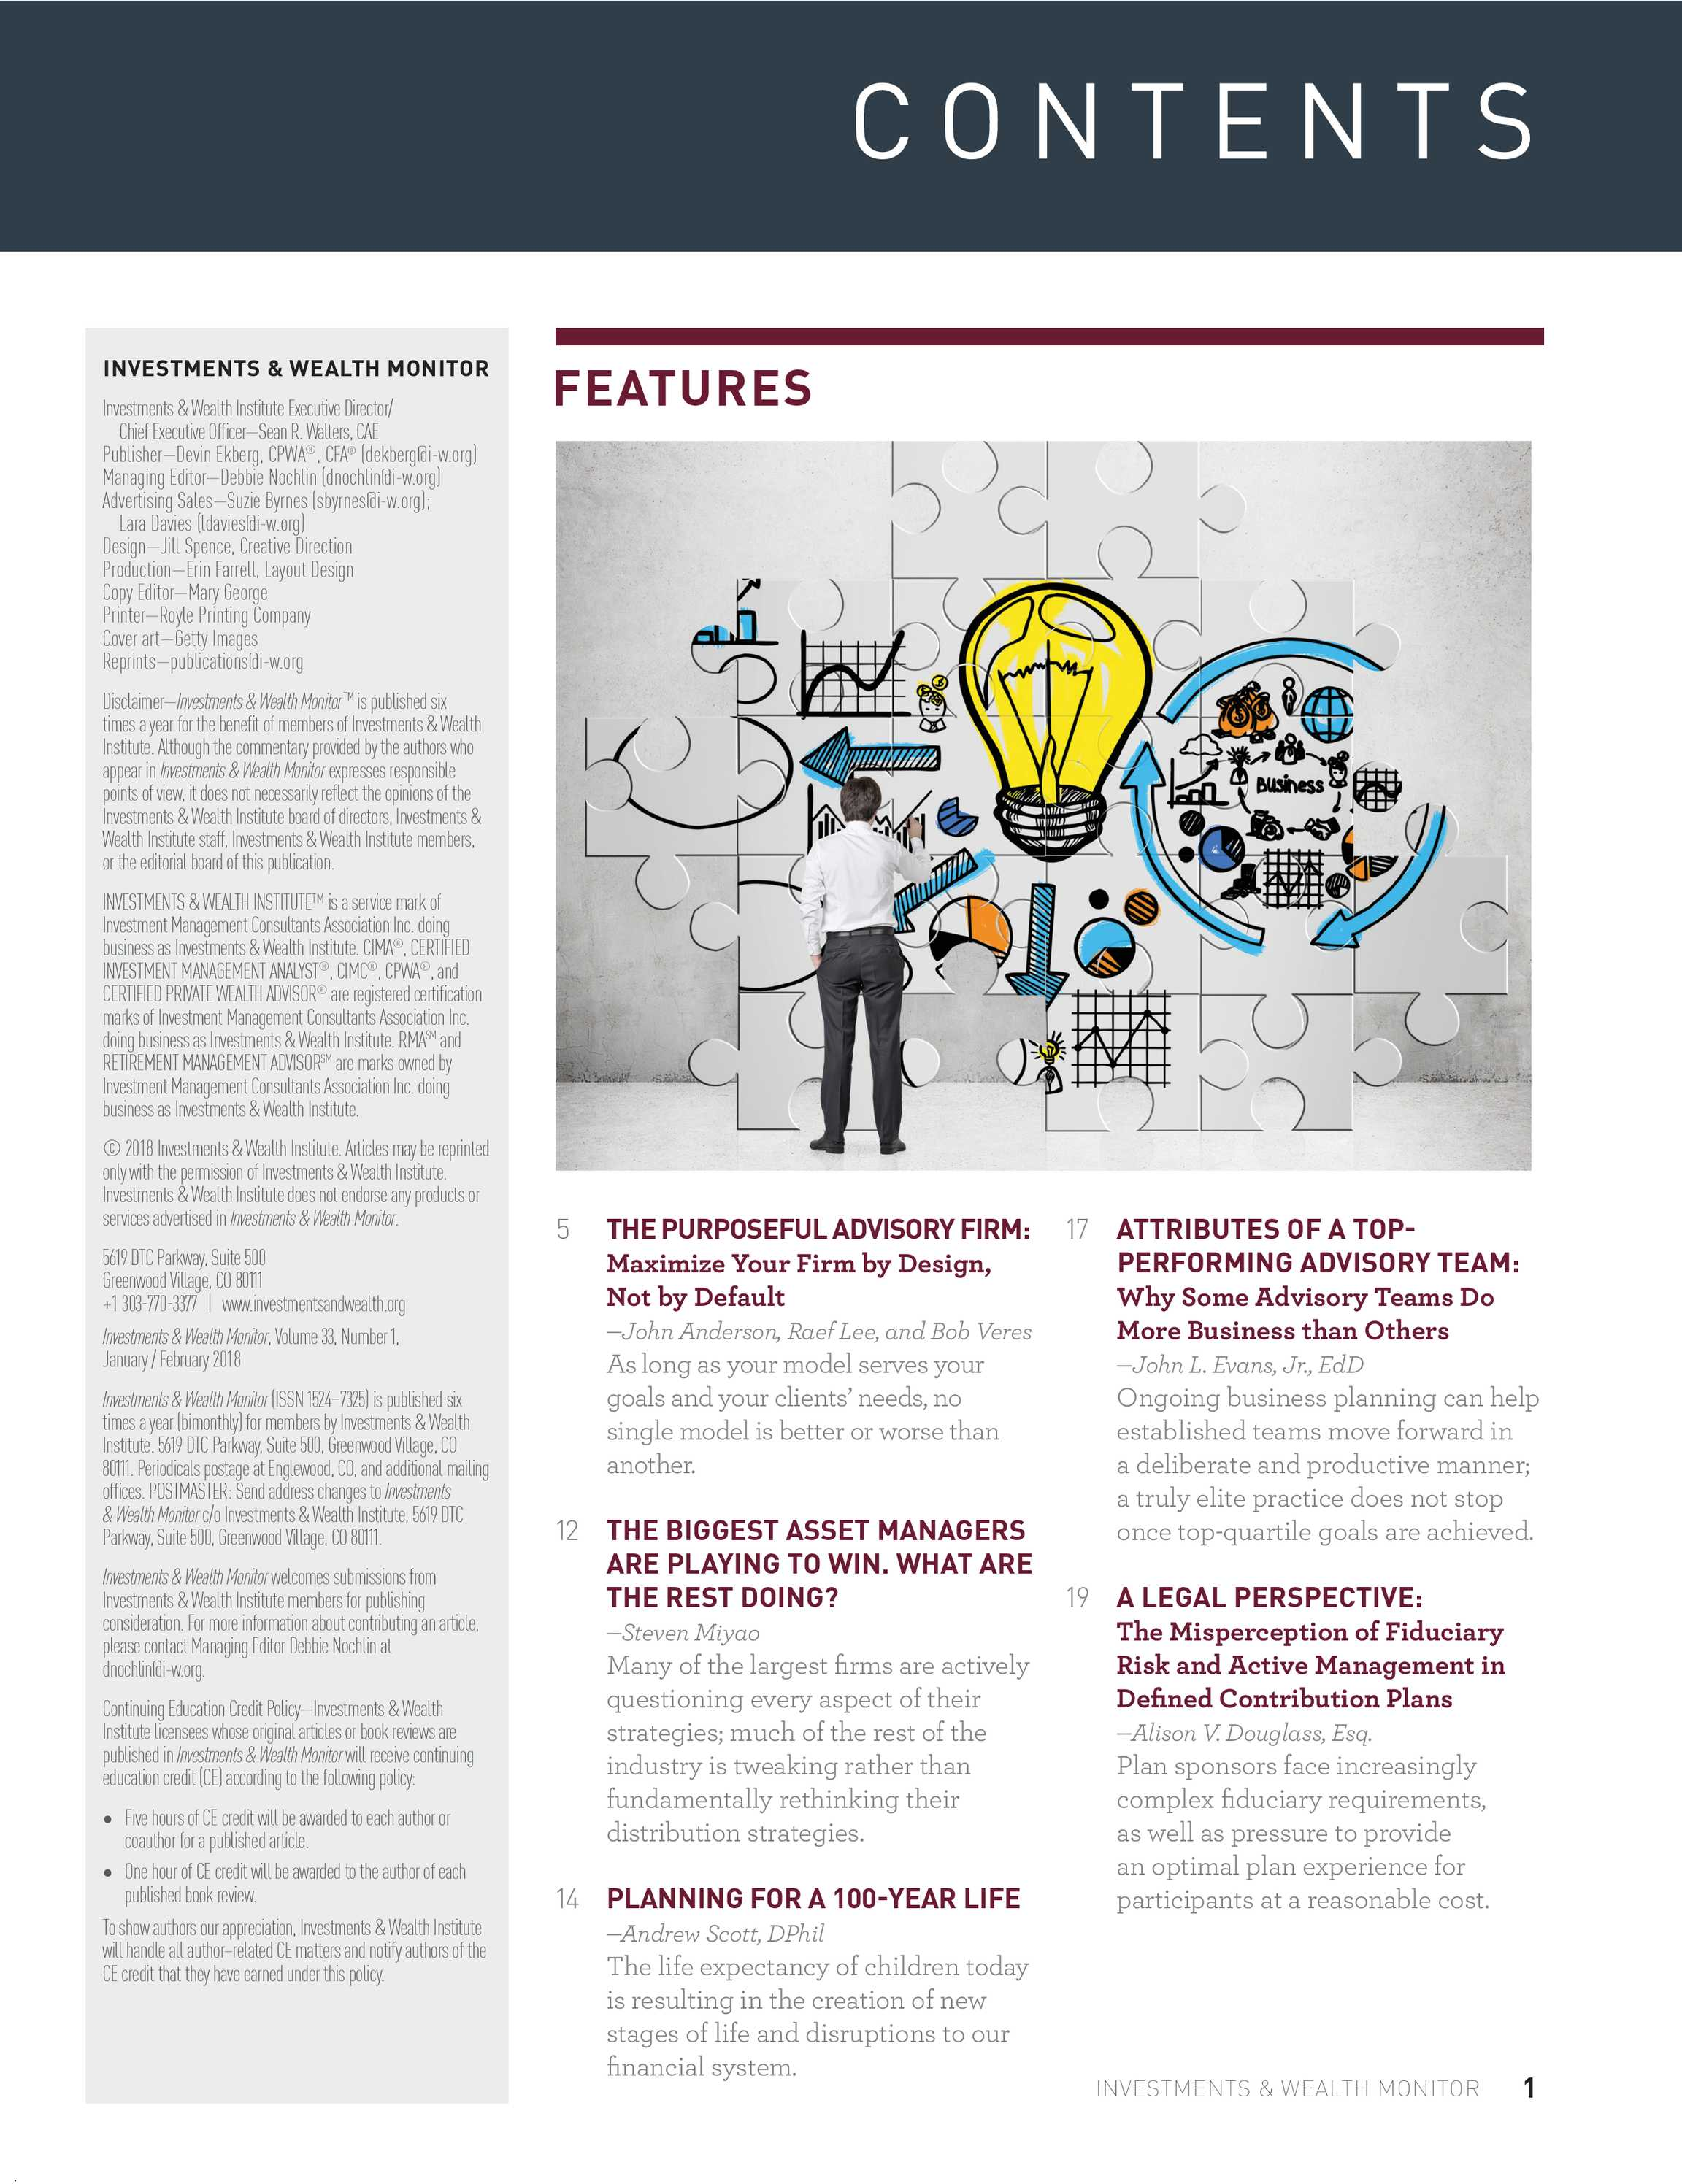 Investments & Wealth Monitor - January/February 2018 - page 1